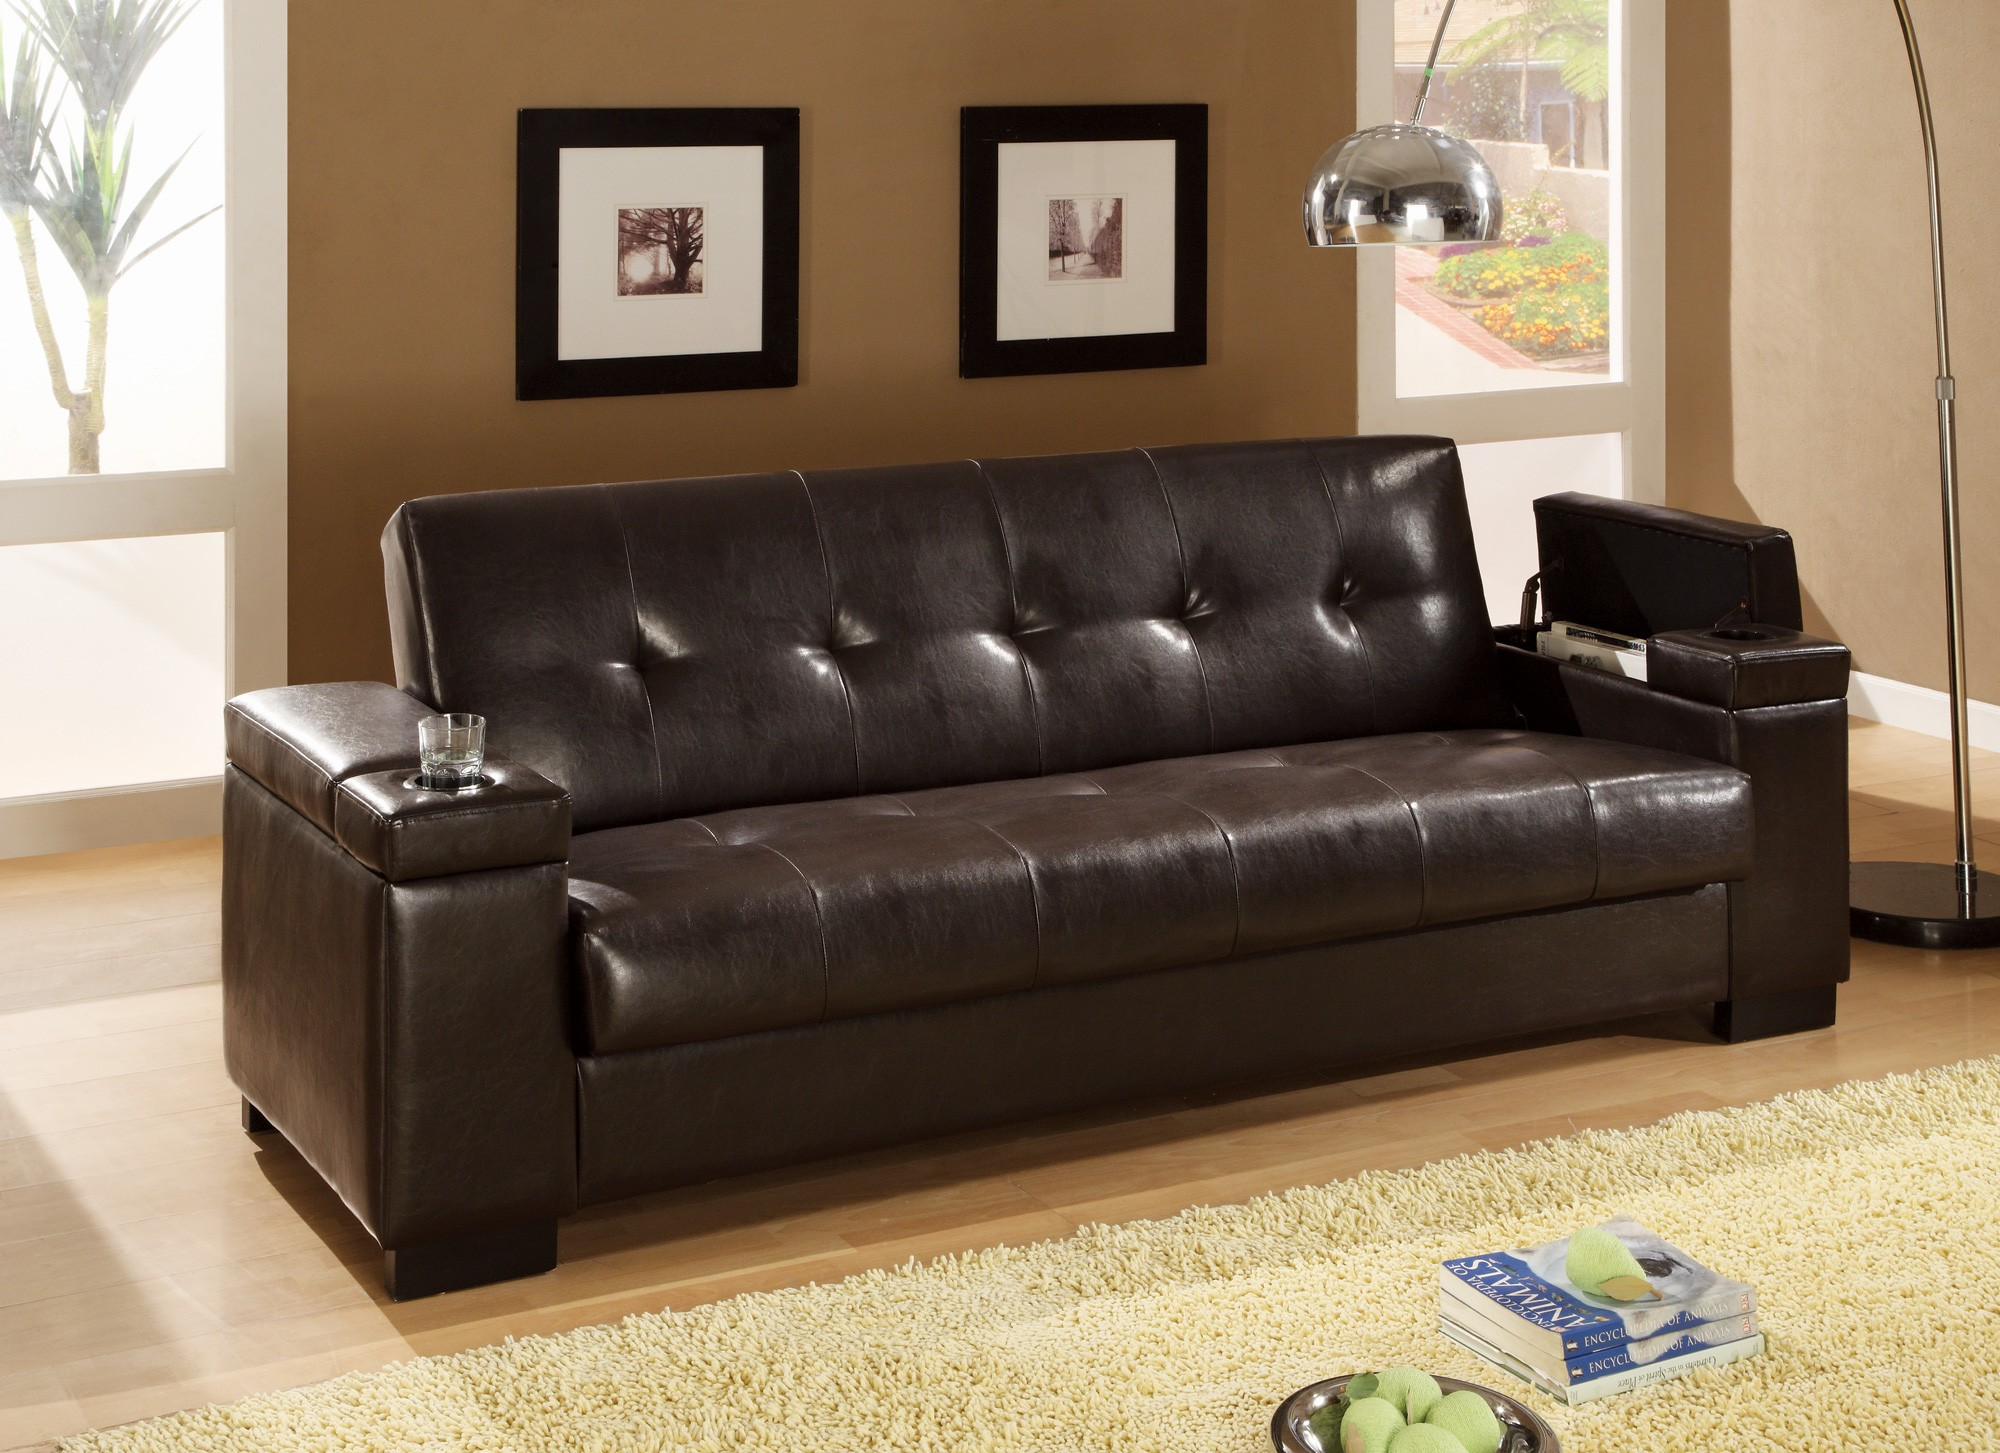 Faux Leather Convertible Sofa Sleeper With Storage 300143 From Coaster 300143 Coleman Furniture